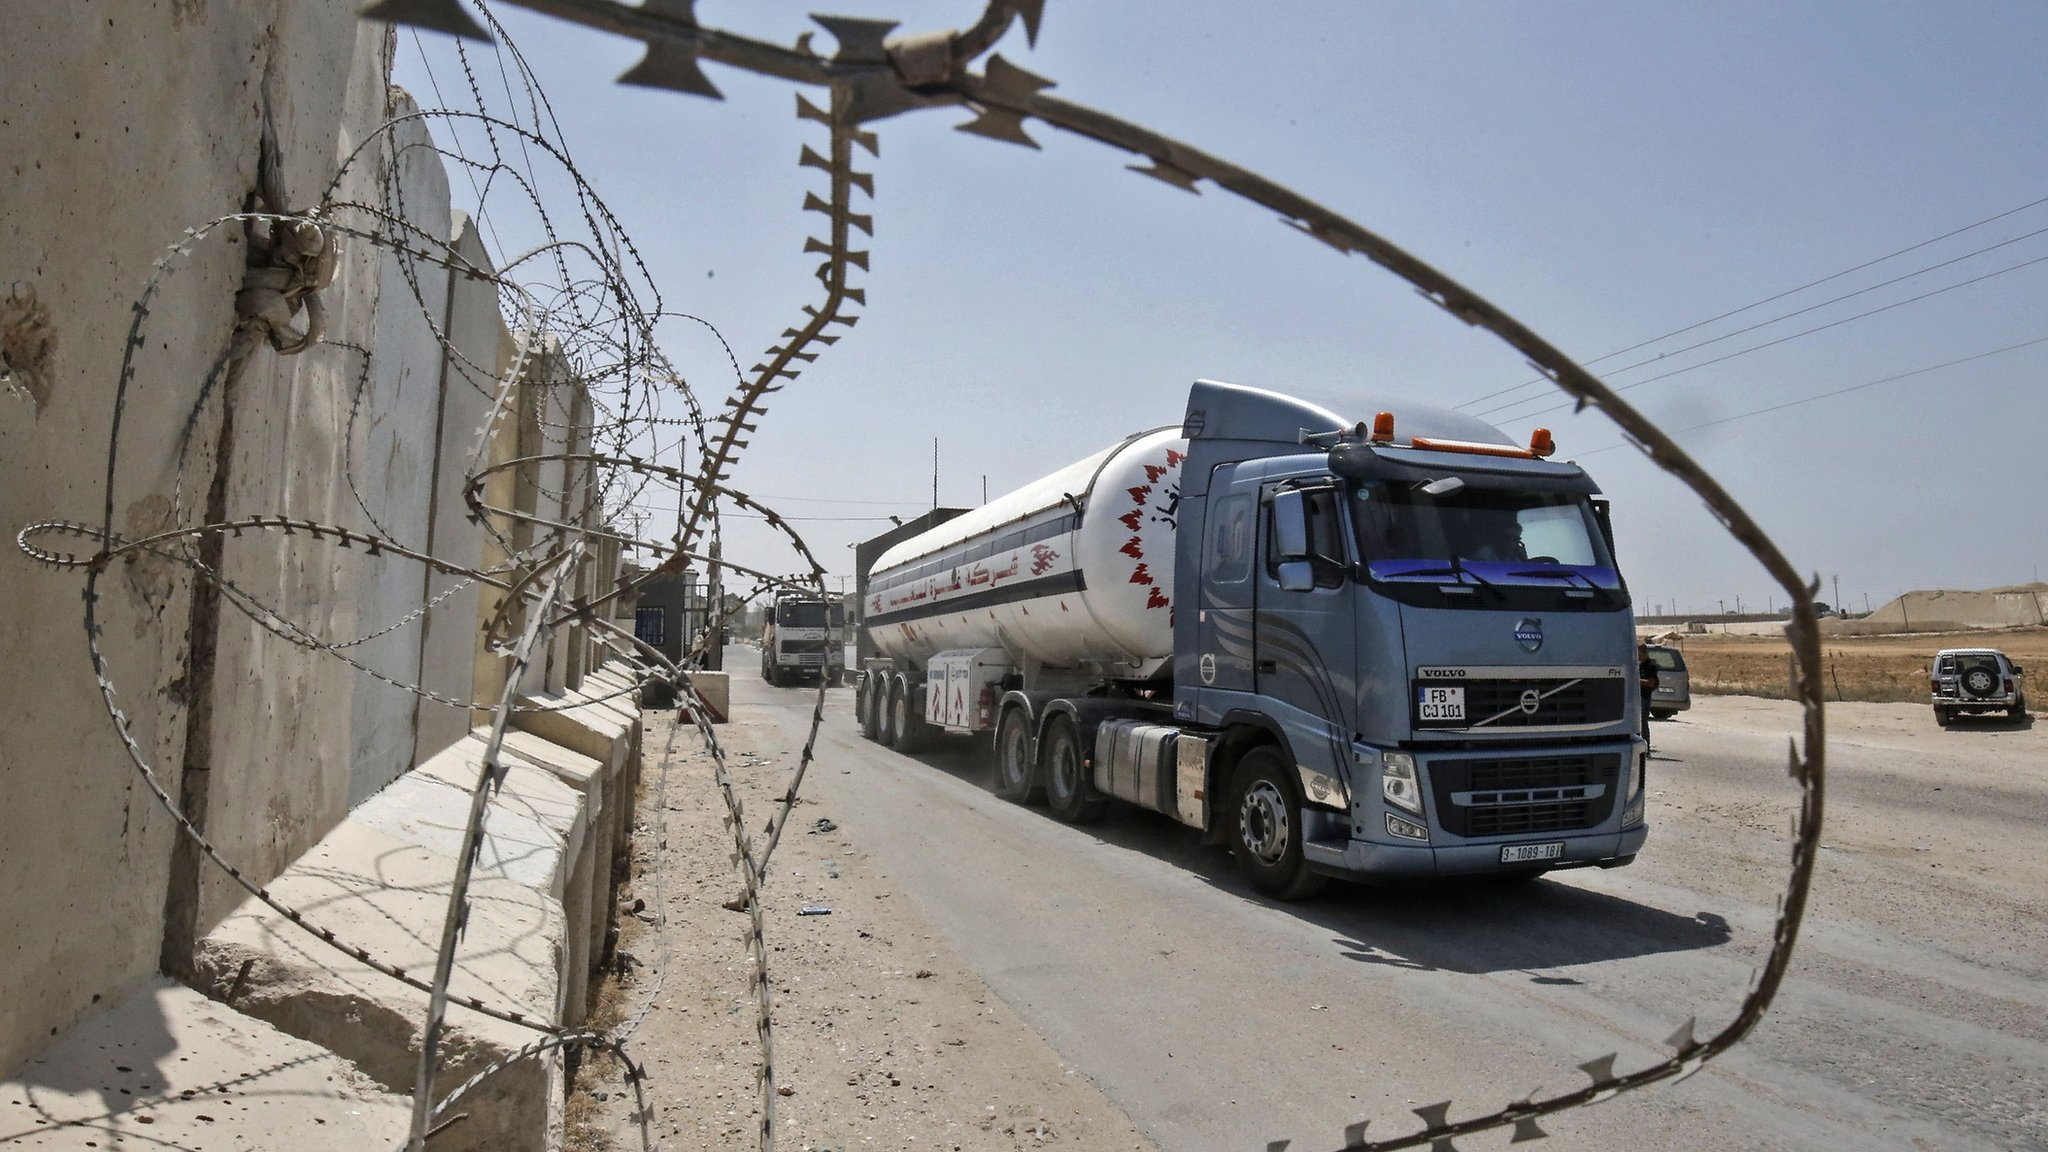 Israel to reopen Gaza cargo crossing if calm holds